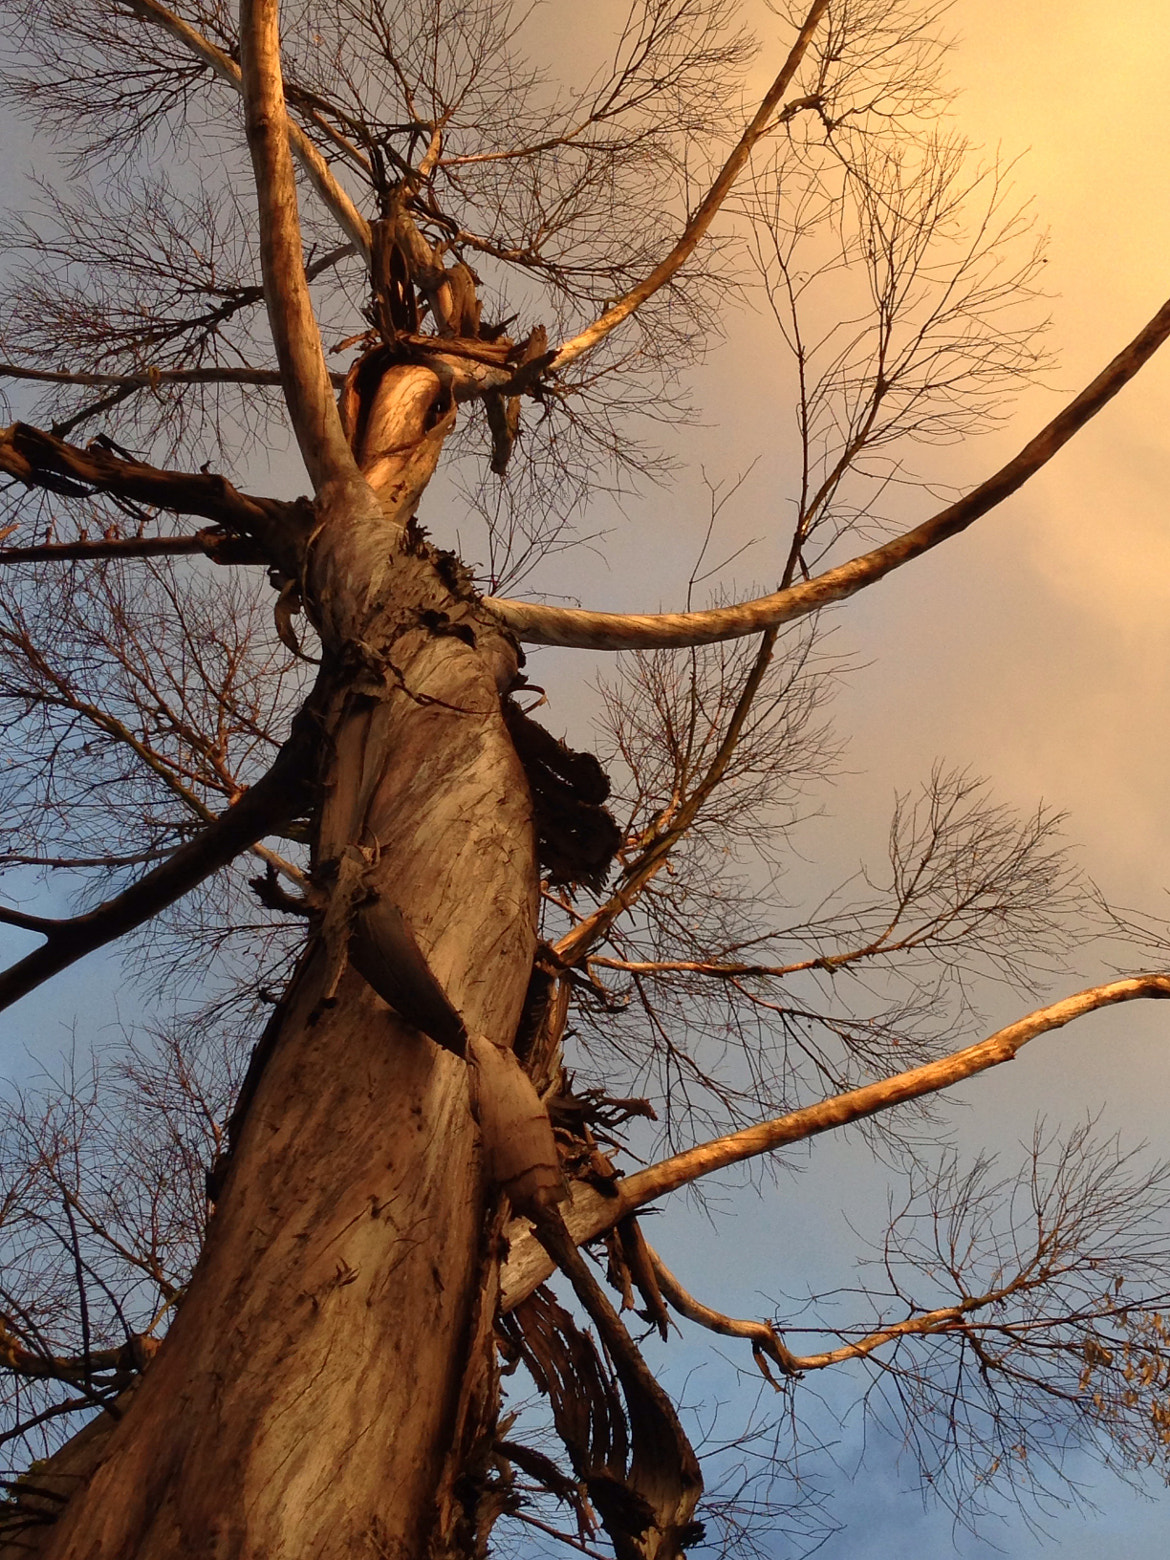 Photograph Old tree under blue n yellow sky by Robert Contreras on 500px